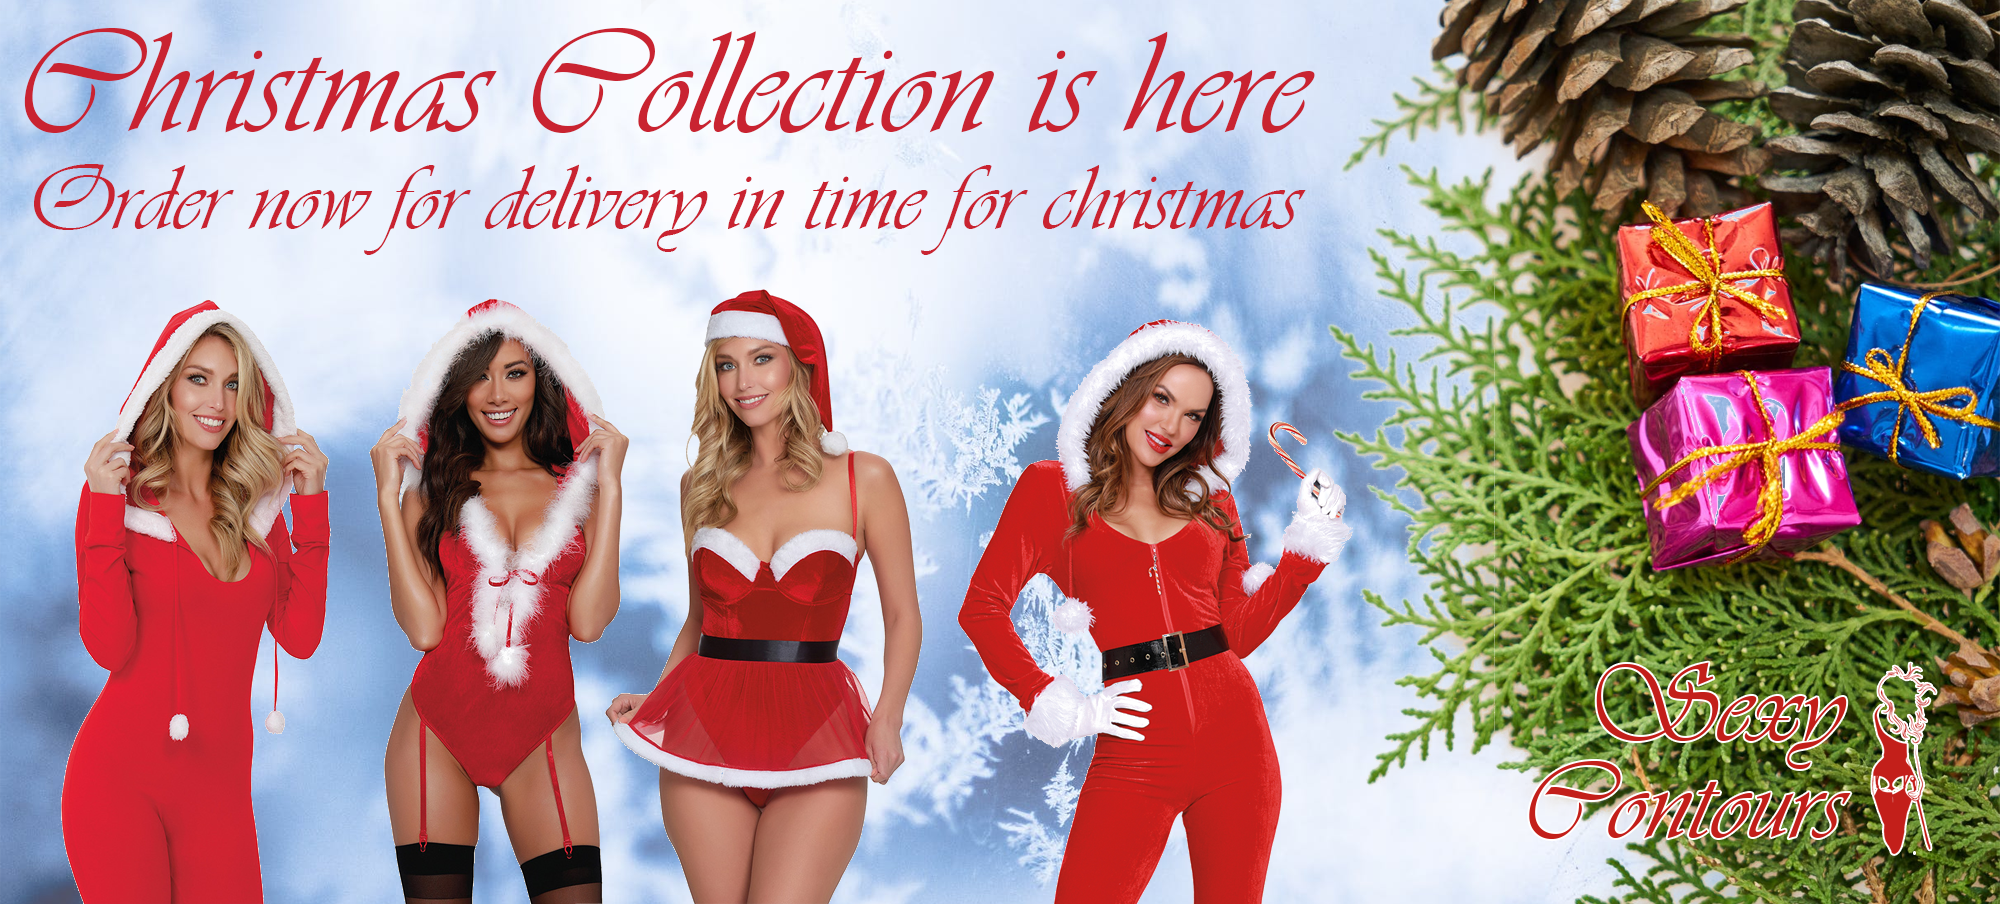 Order before 10th December to get those extra special presents in time for Christmas delivery!